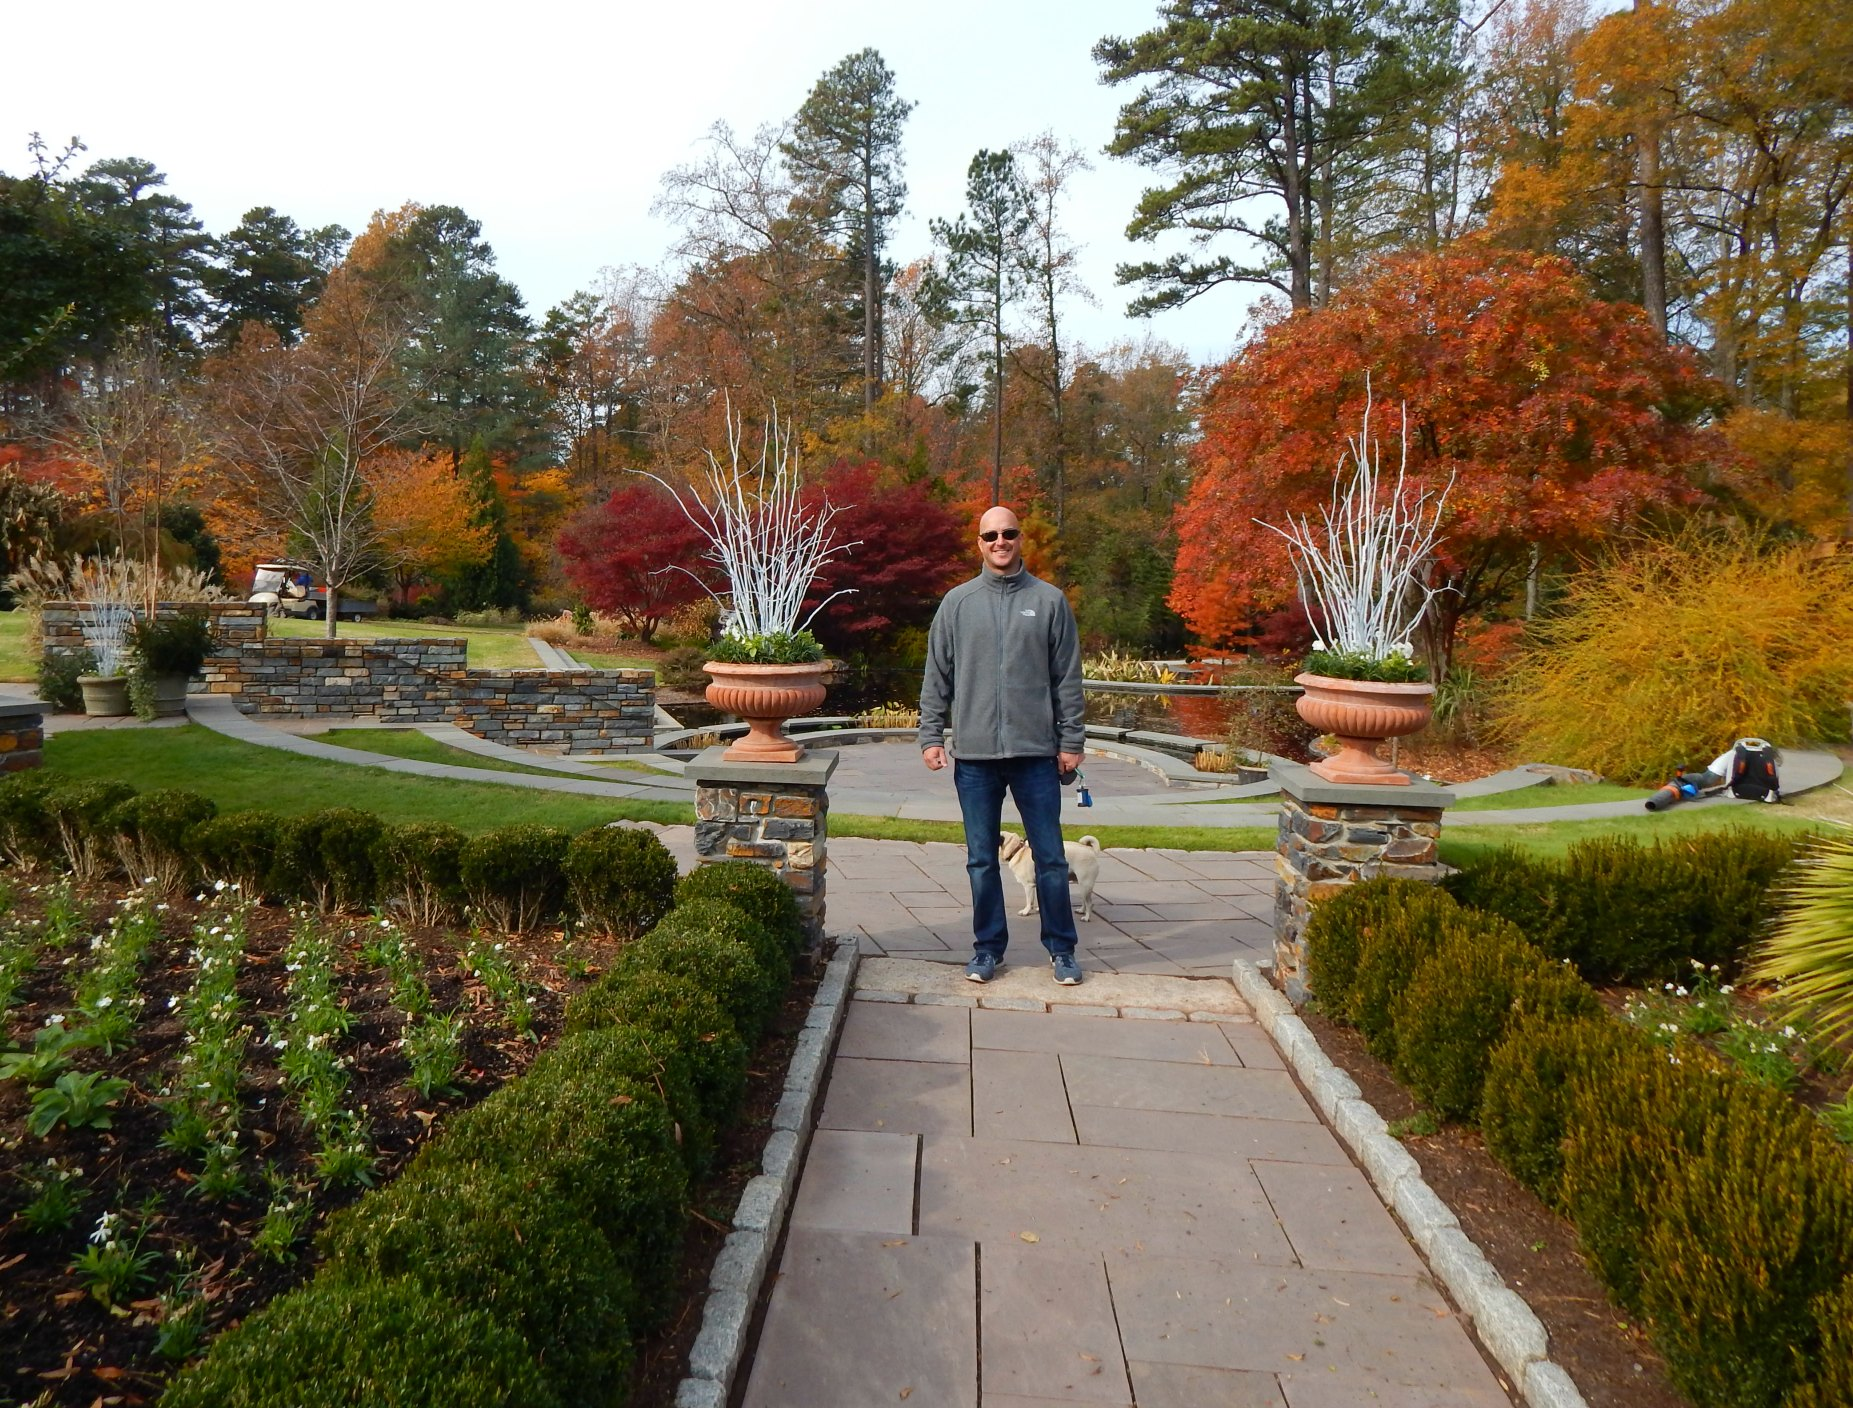 Visiting Duke Gardens in Fall - Miss Smarty Plants